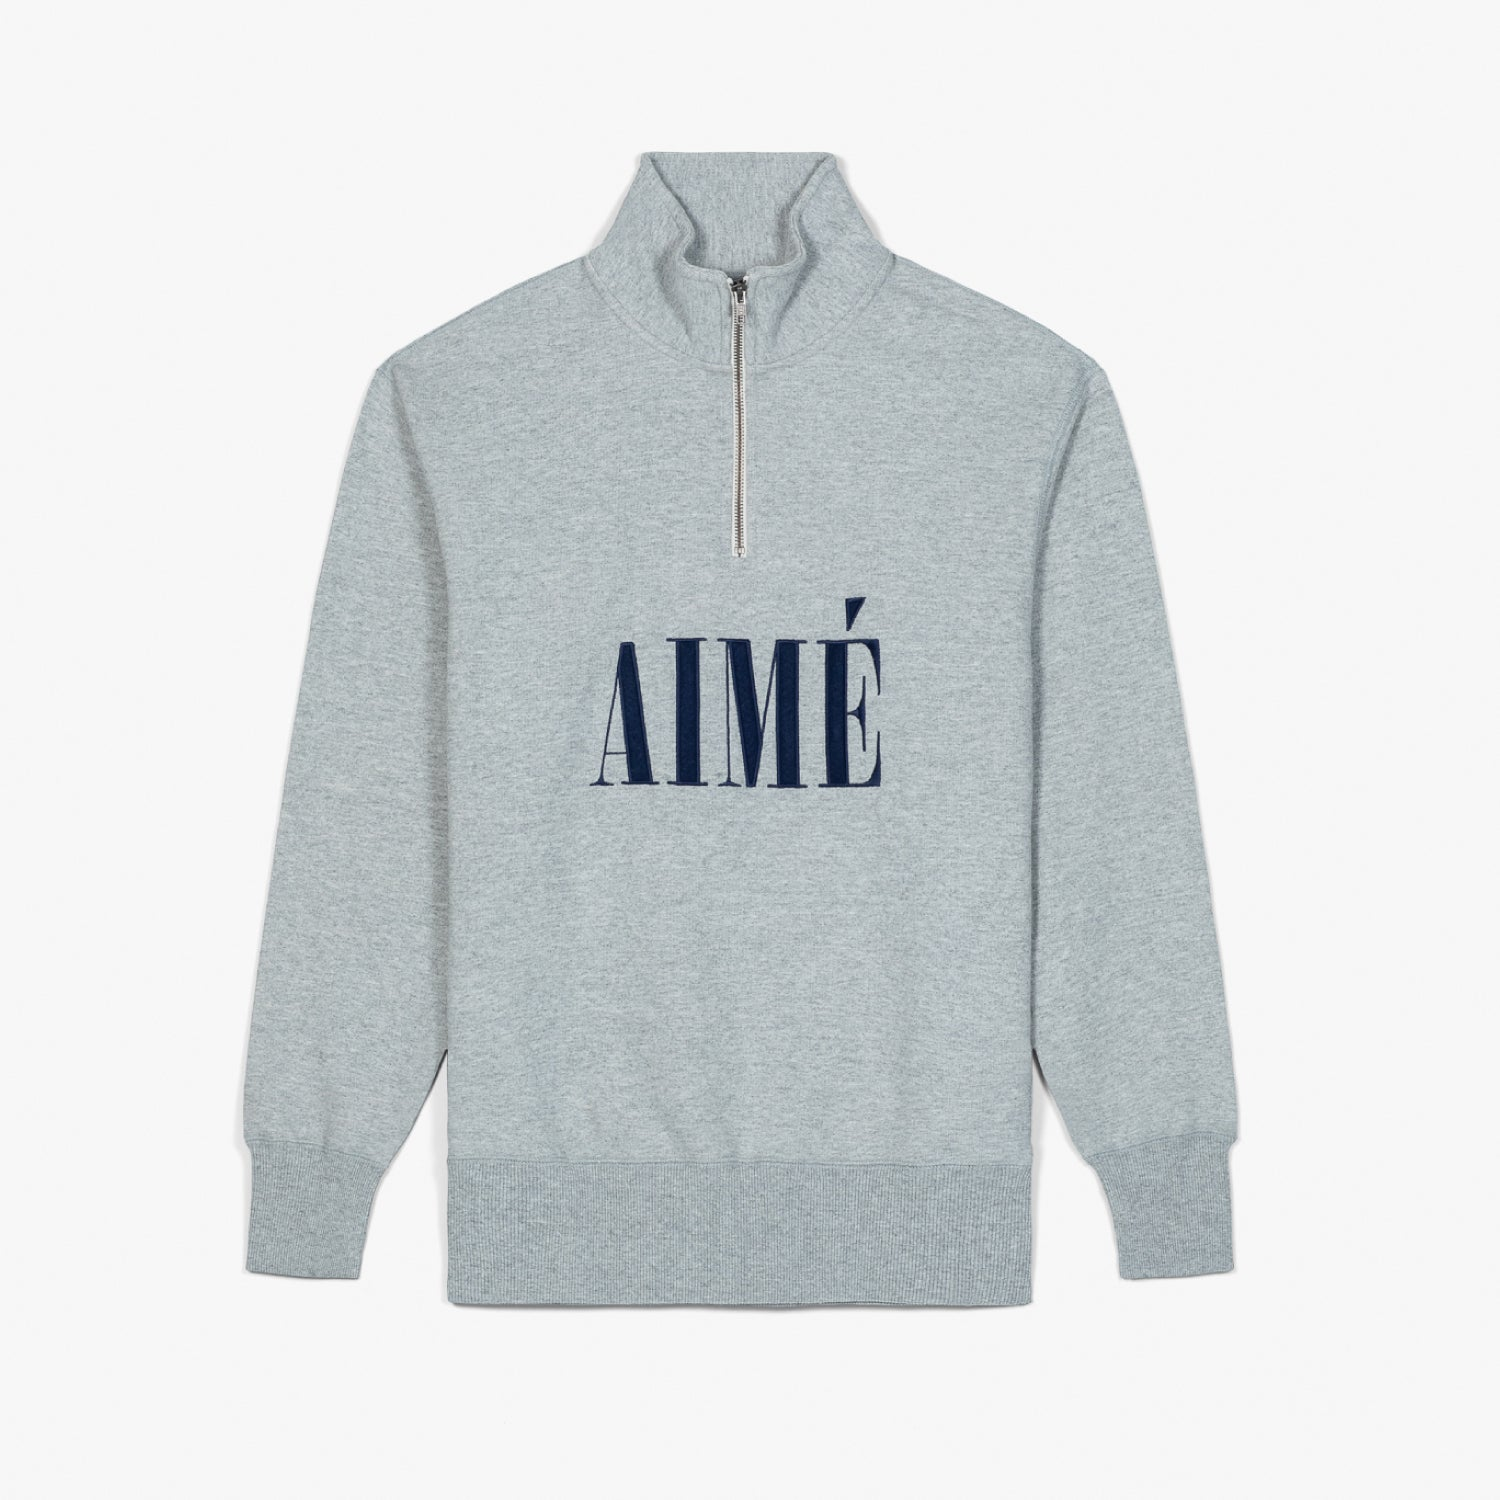 AIME QUARTER ZIP PULLOVER - GREY